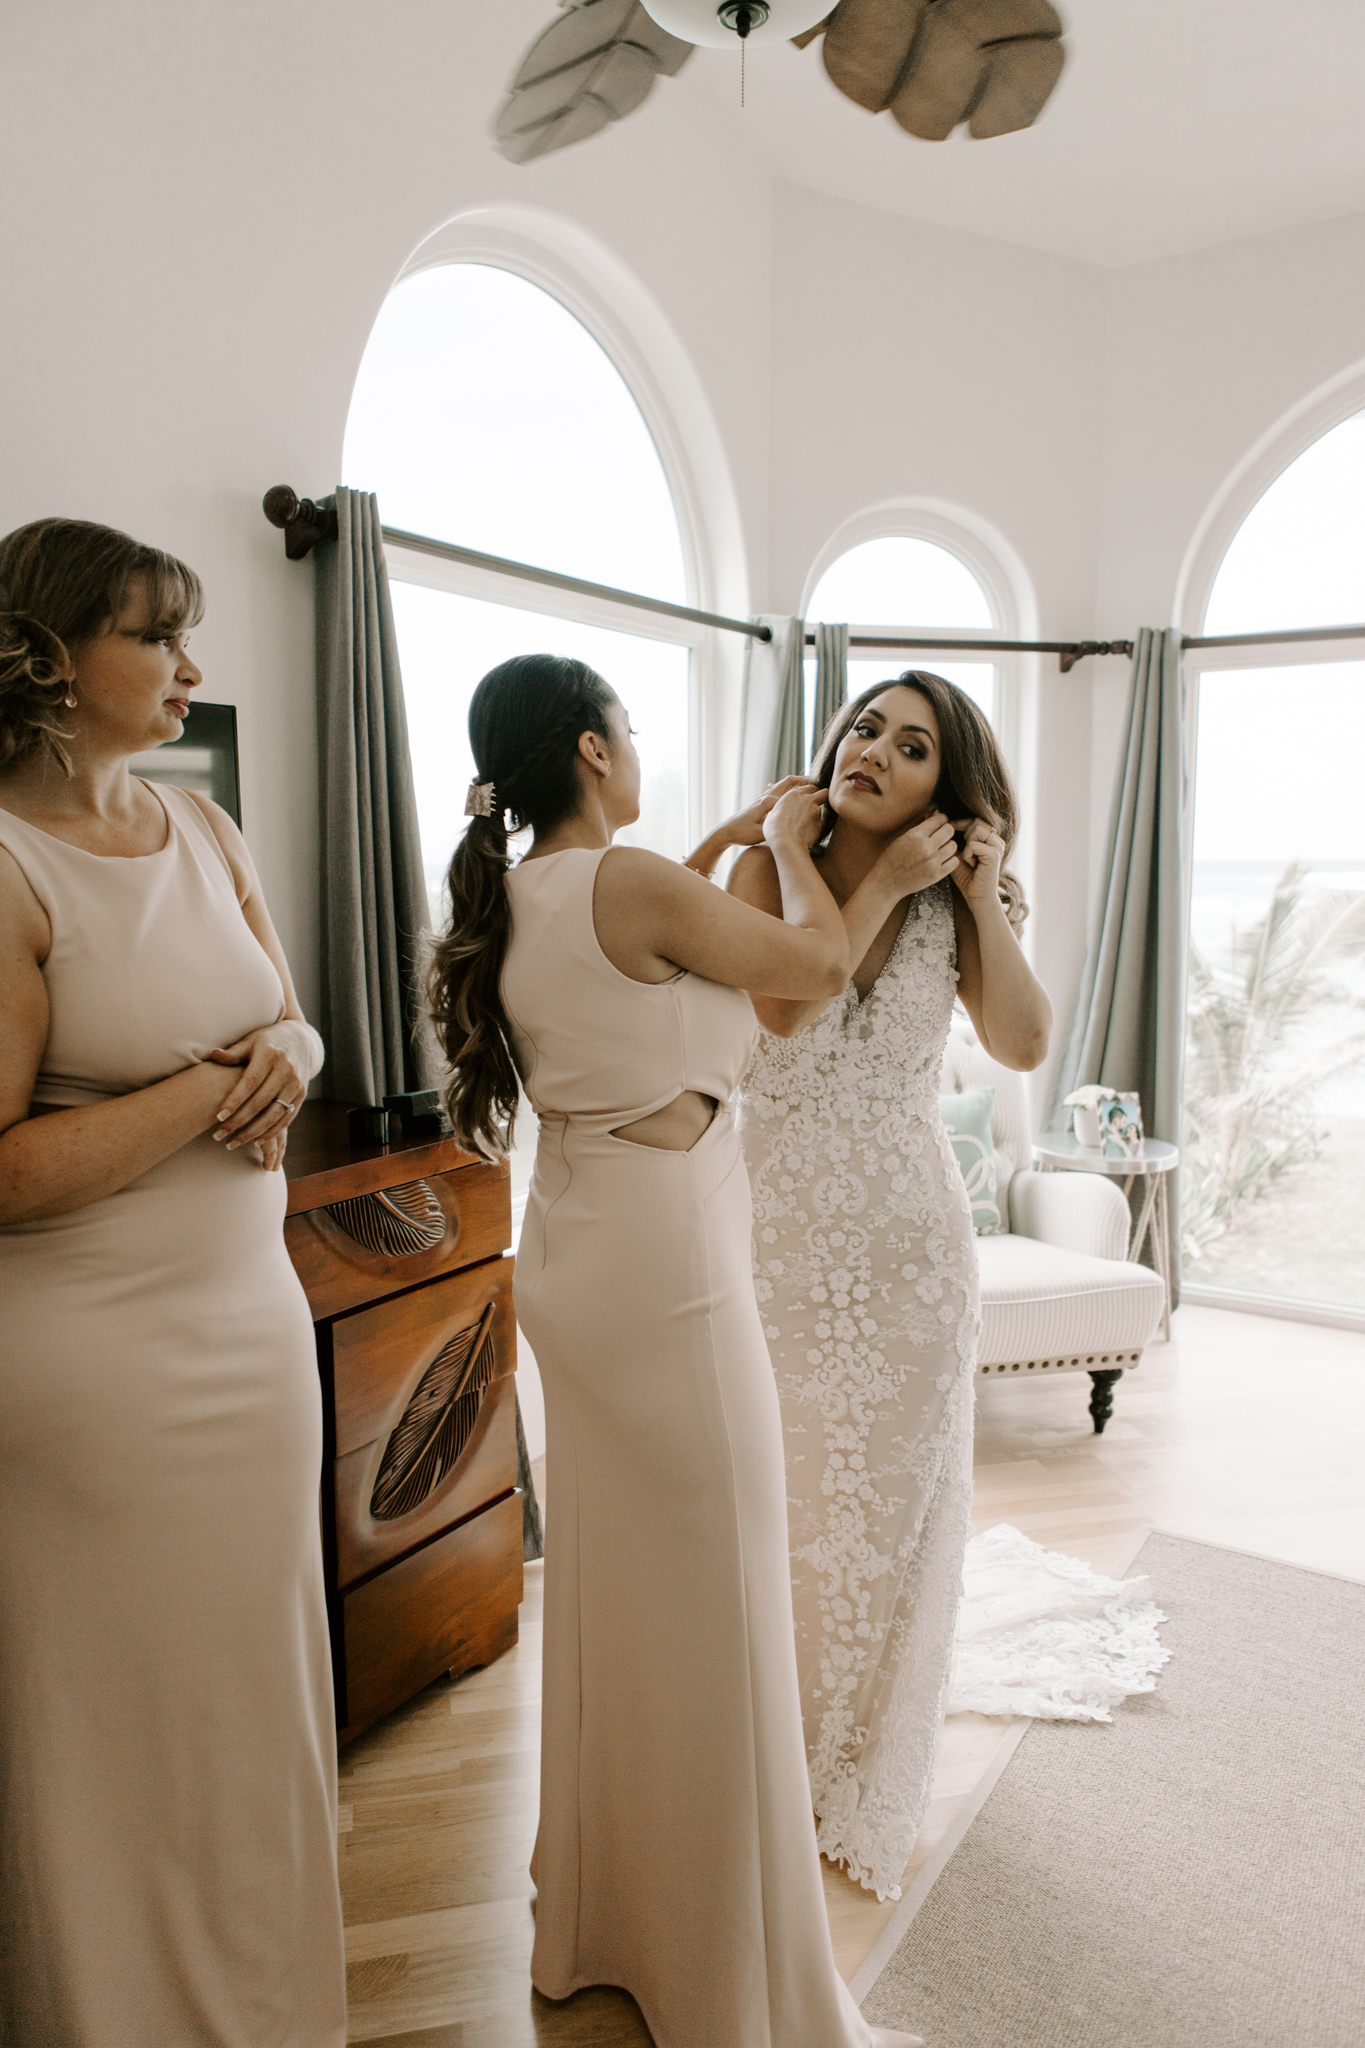 Bride and her bridesmaids getting ready